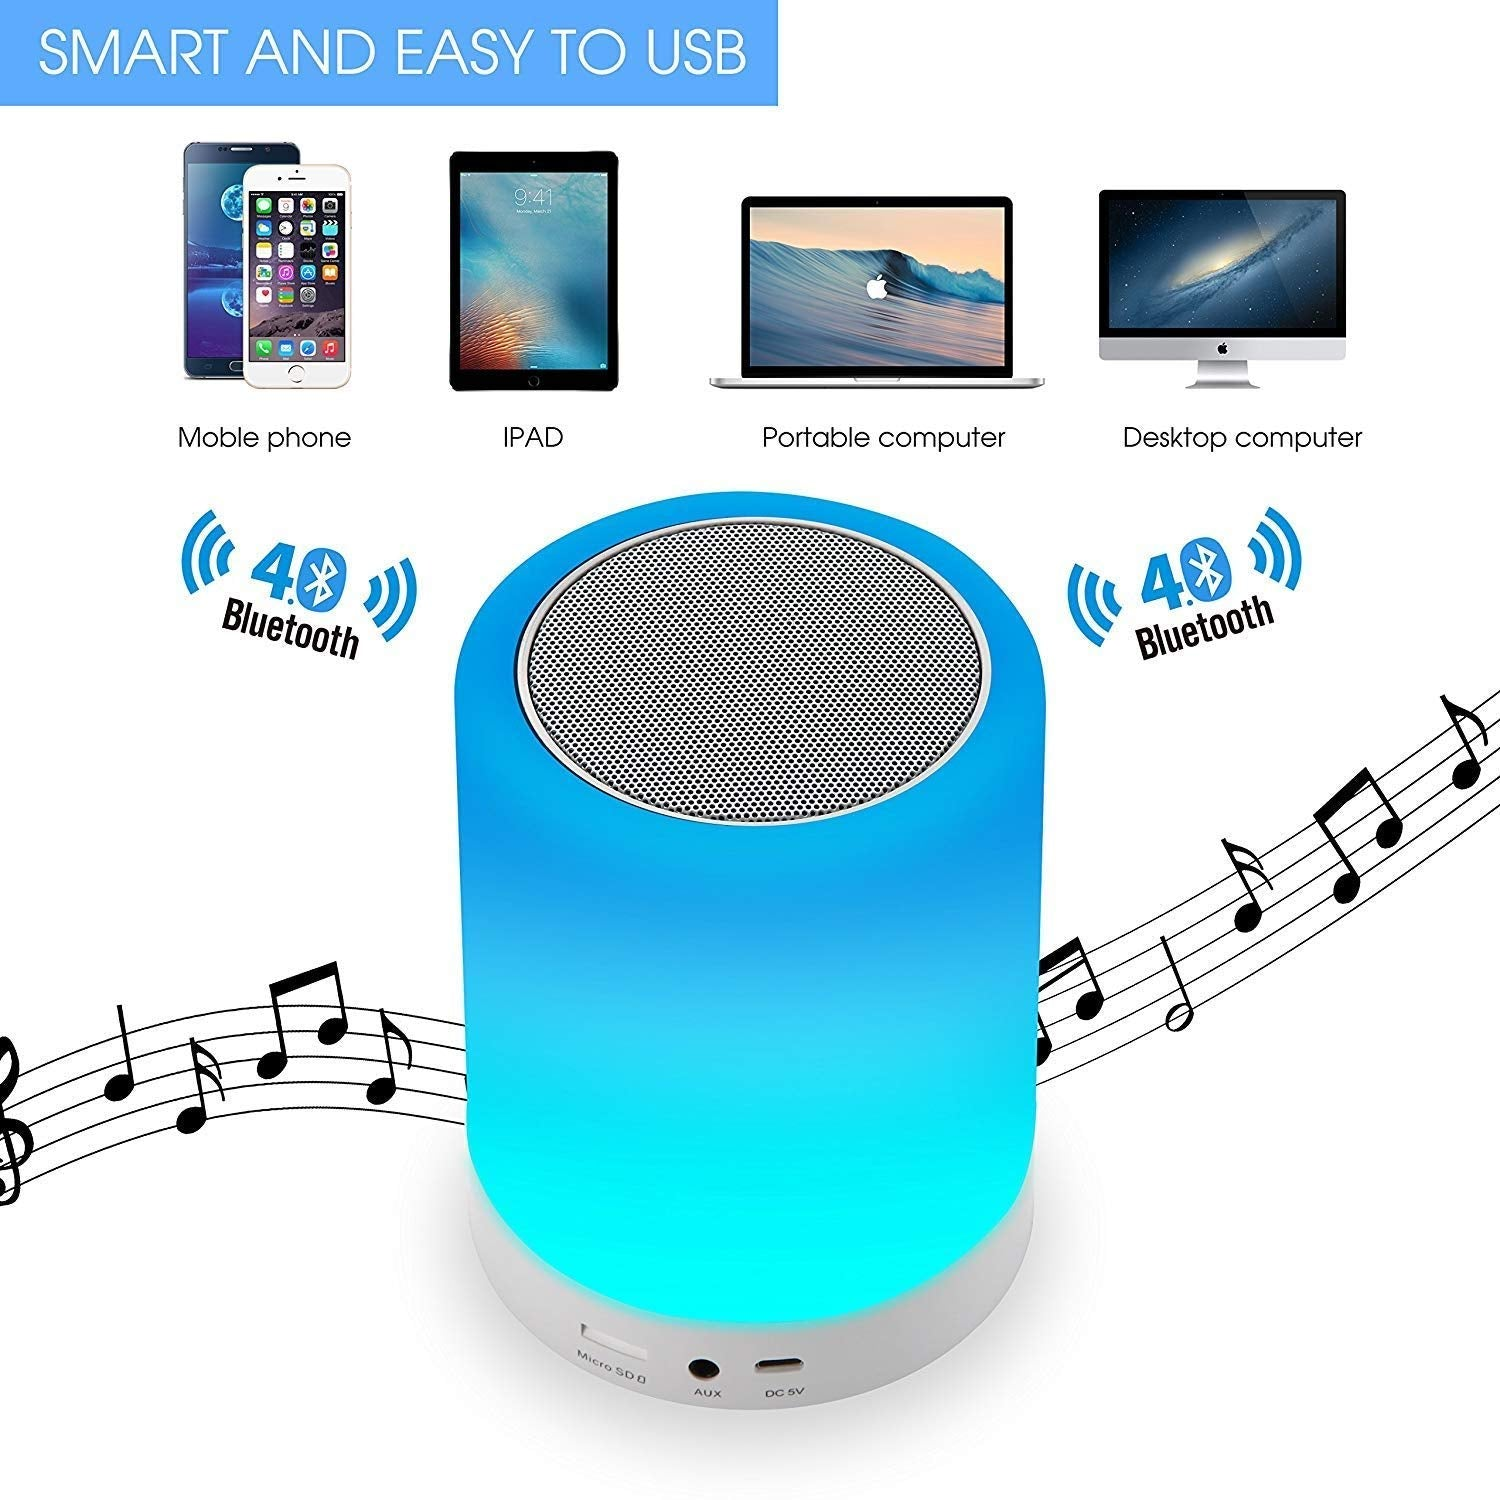 Party Night Bluetooth Speaker - 50% OFF - A&A Shoppers